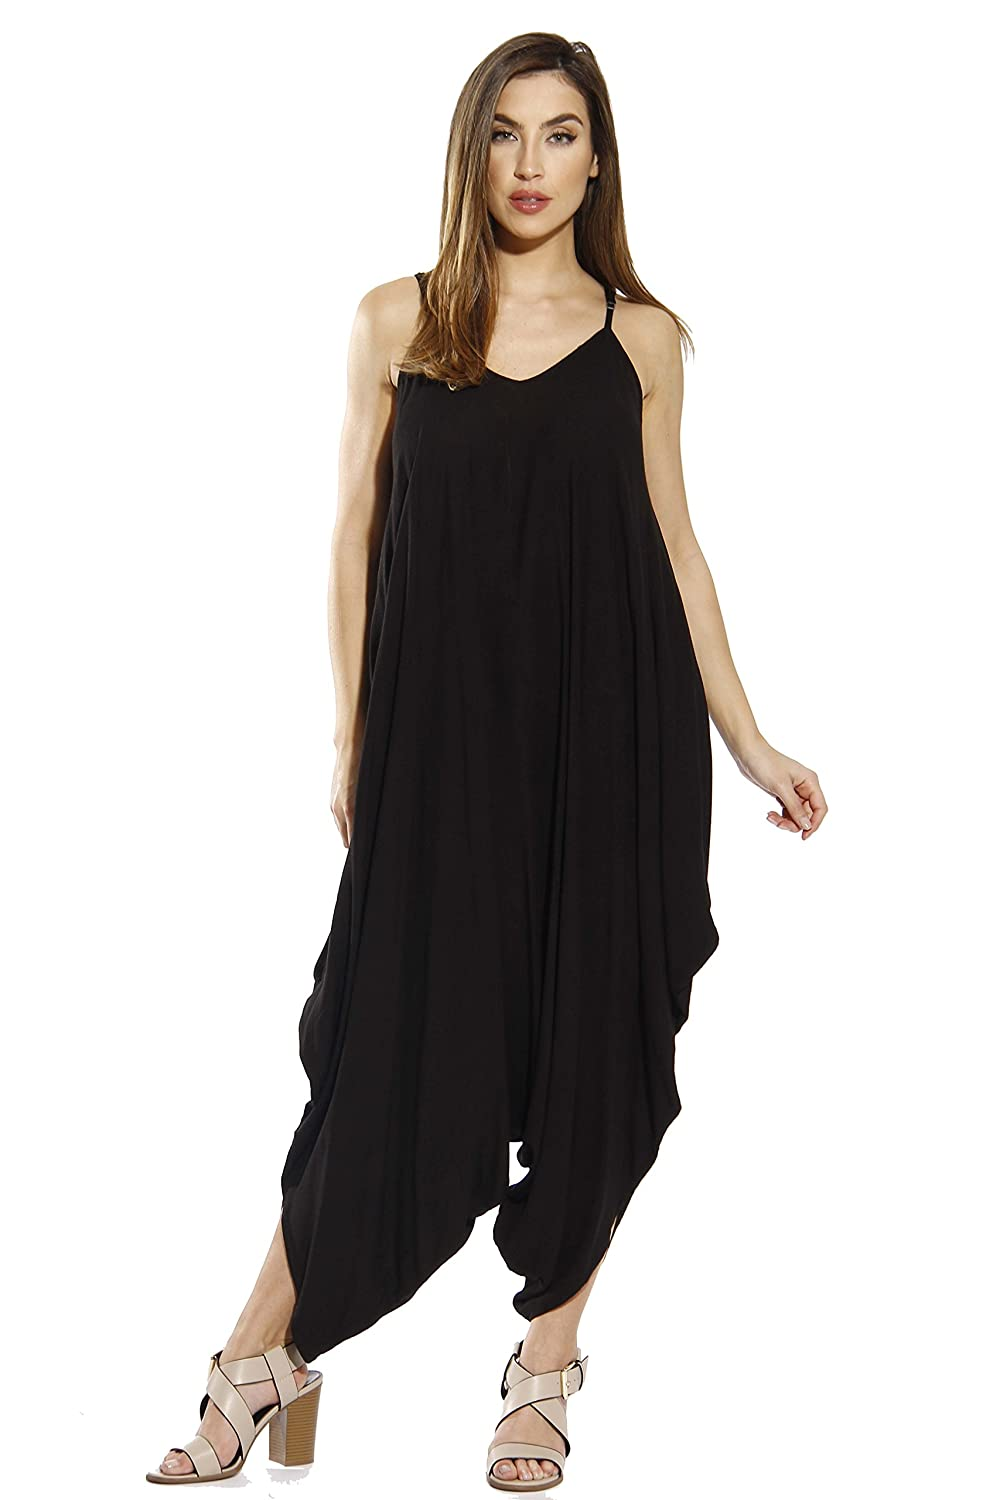 084818ce7d300 Going Out Jumpsuits Cheap | Saddha